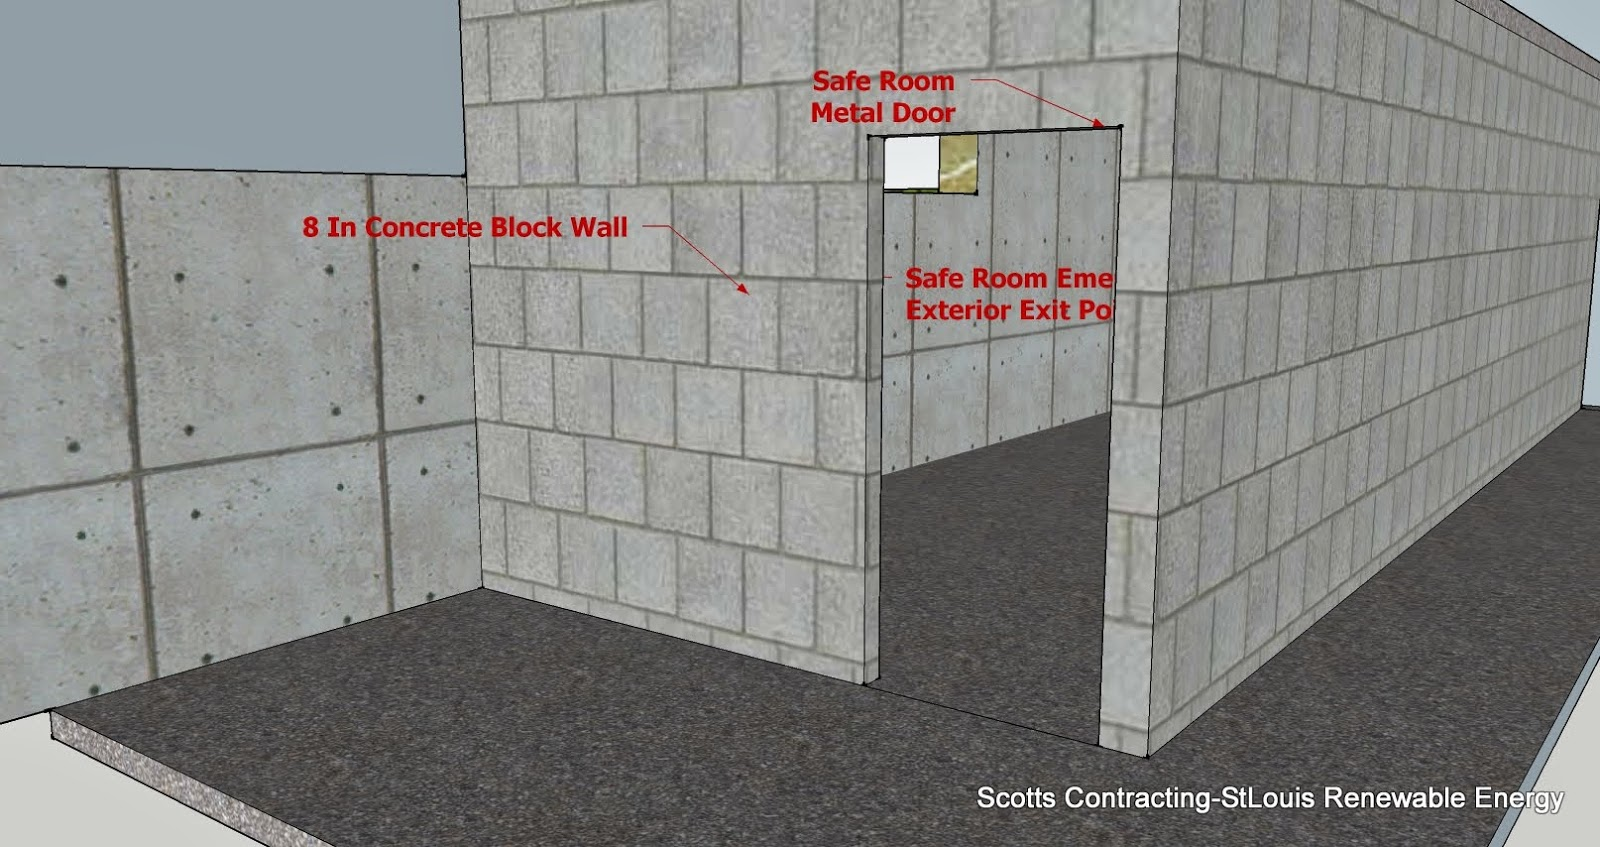 Safe Room Design St Louis Renewable Energy Scotts